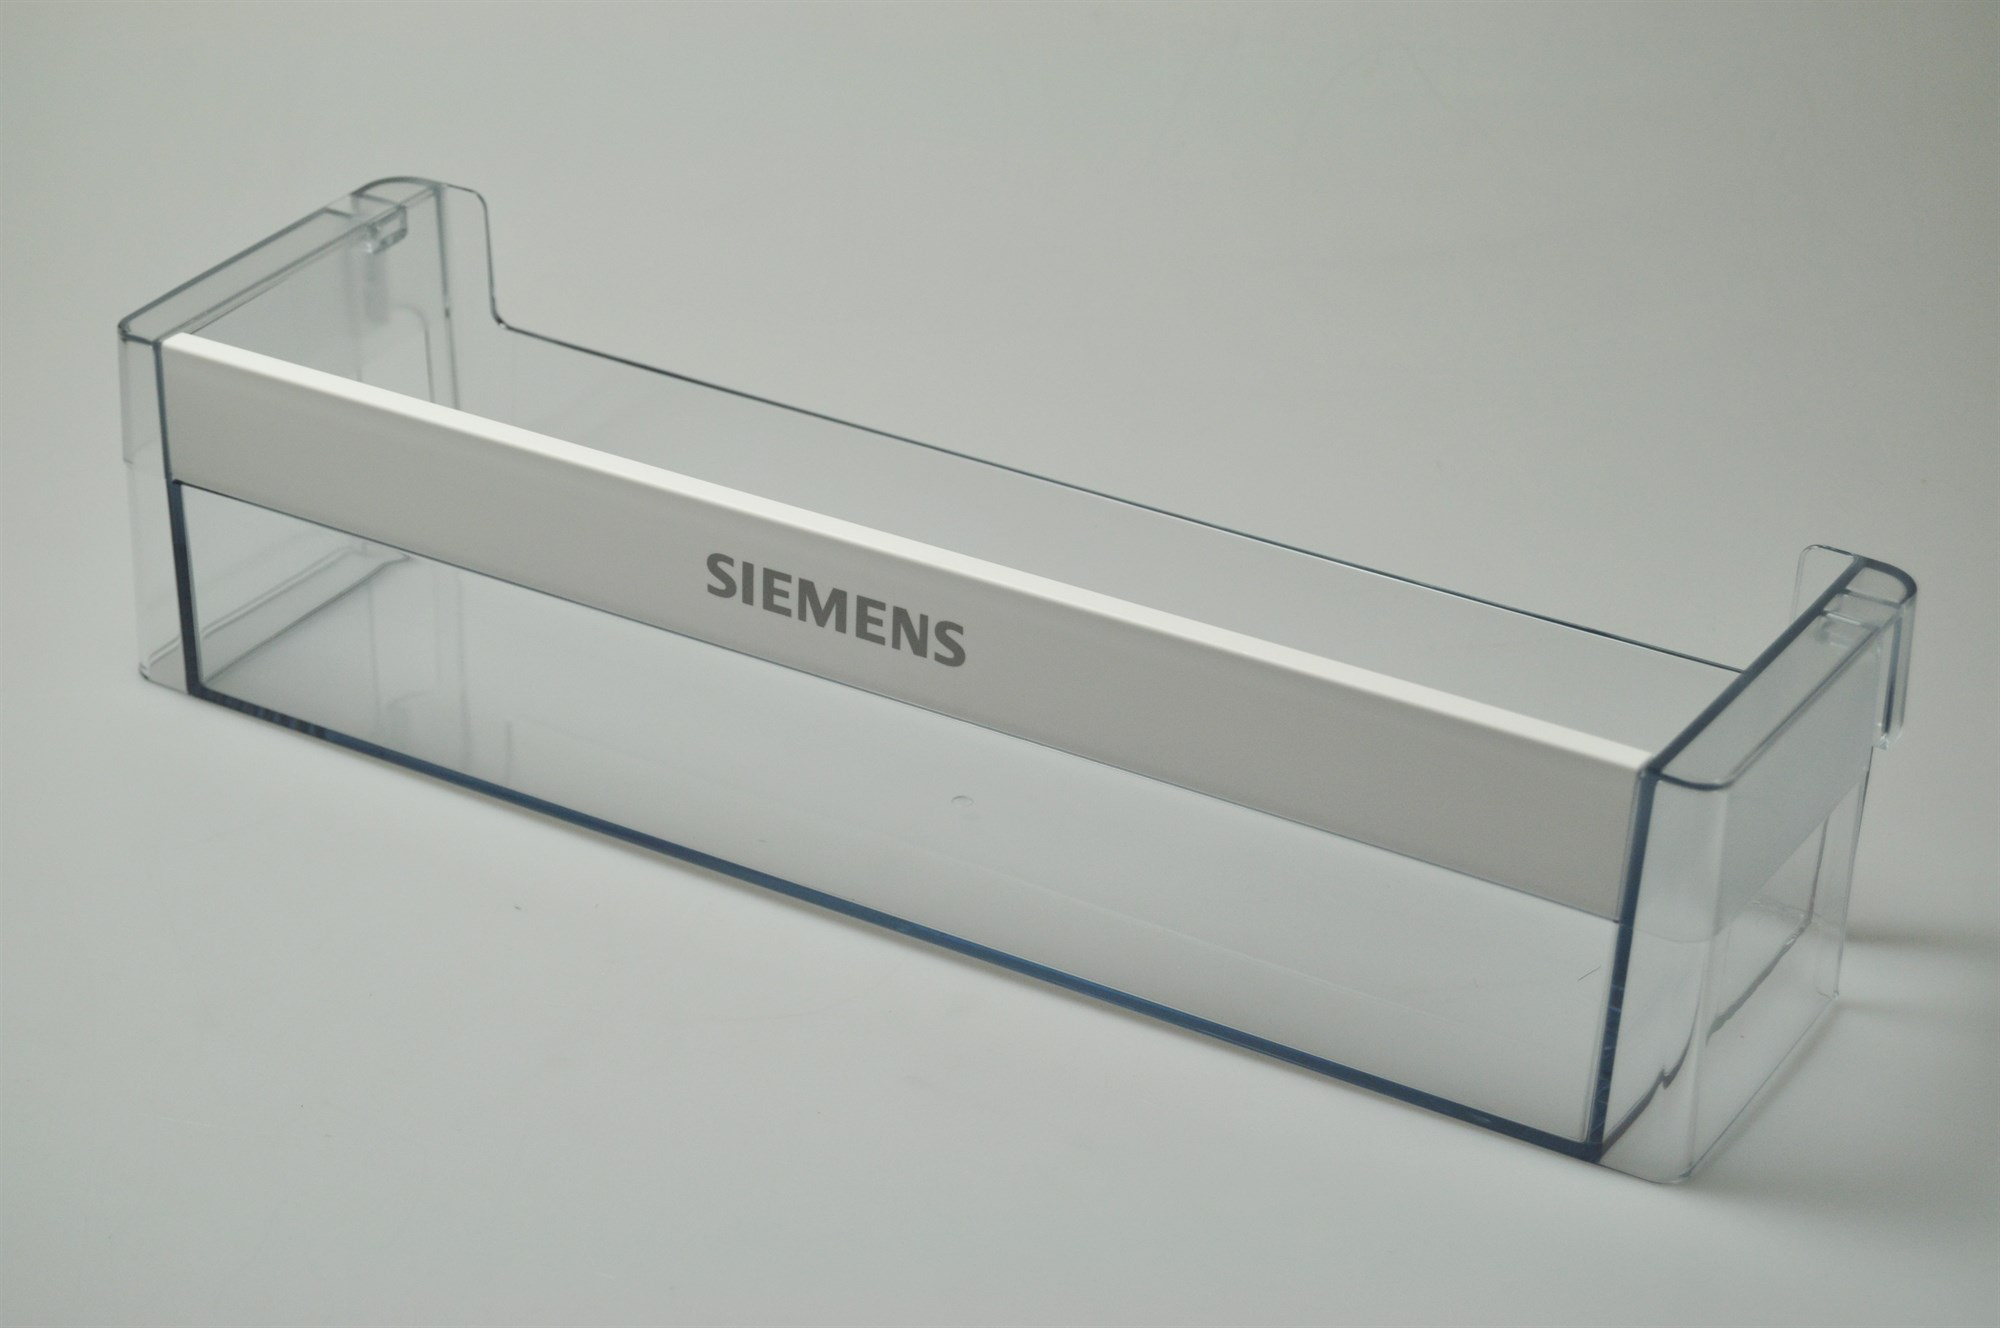 & Door shelf Siemens fridge u0026 freezer (lower)